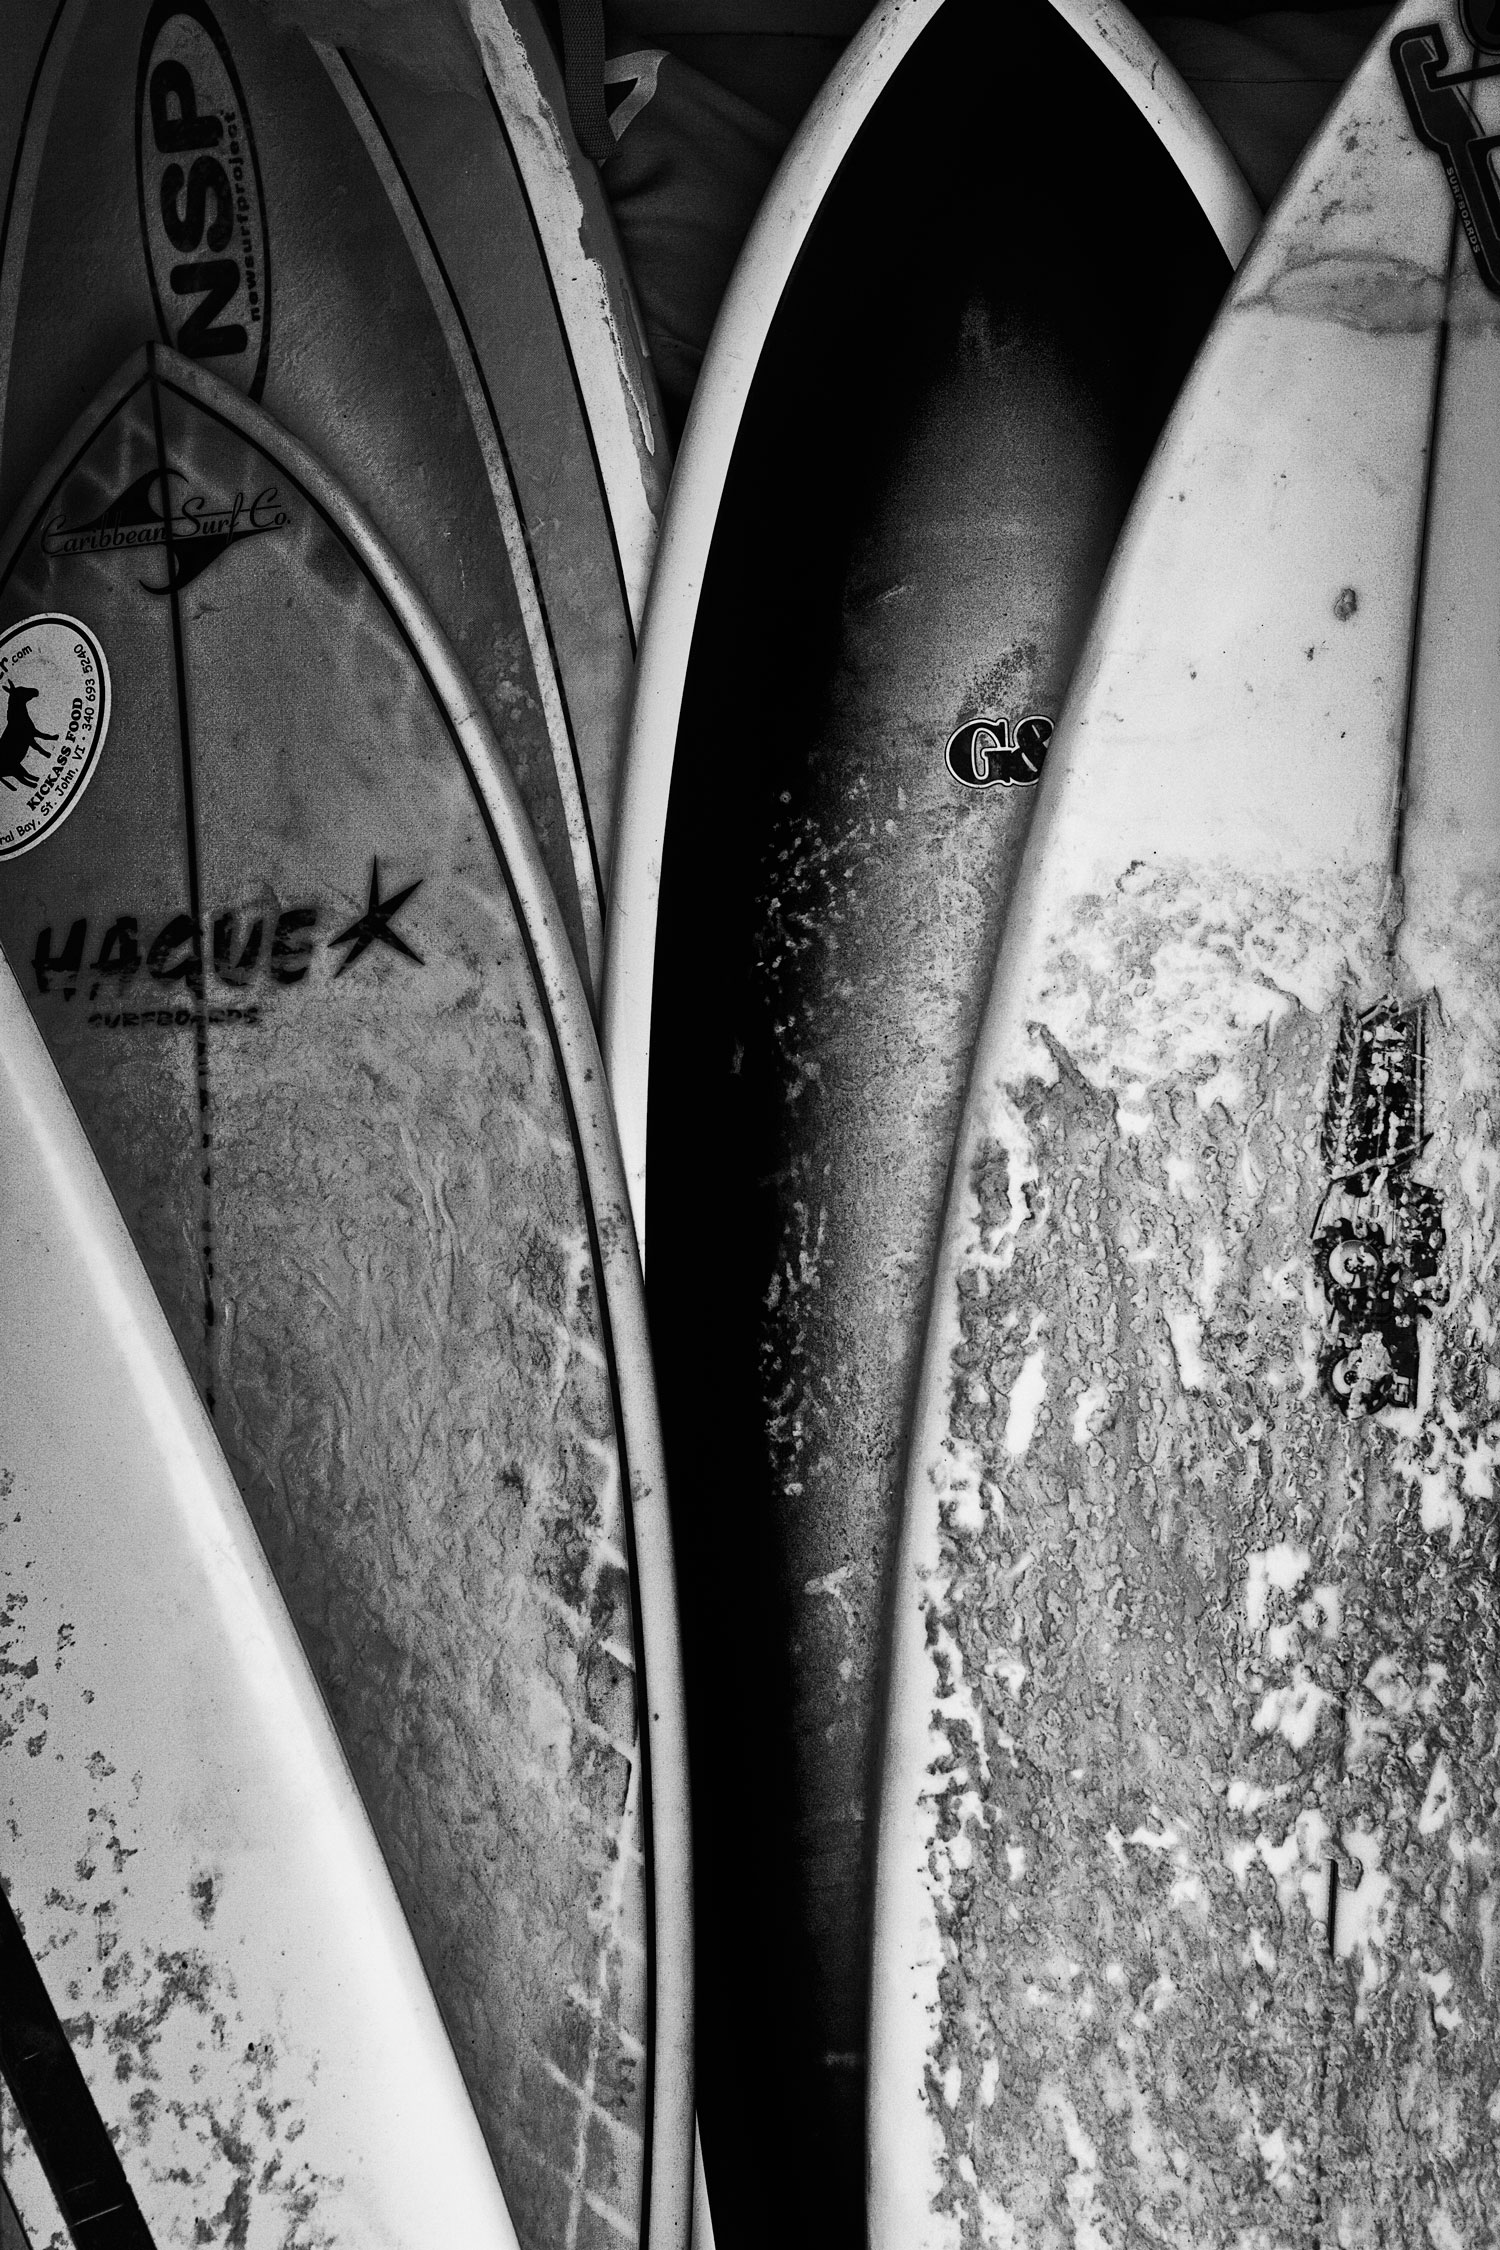 Surfboards from Cinamon Bay, US Virgin Islands This image was the most circulated shot of mine in 2016 both through social media and commercially. It was taken in 2009.